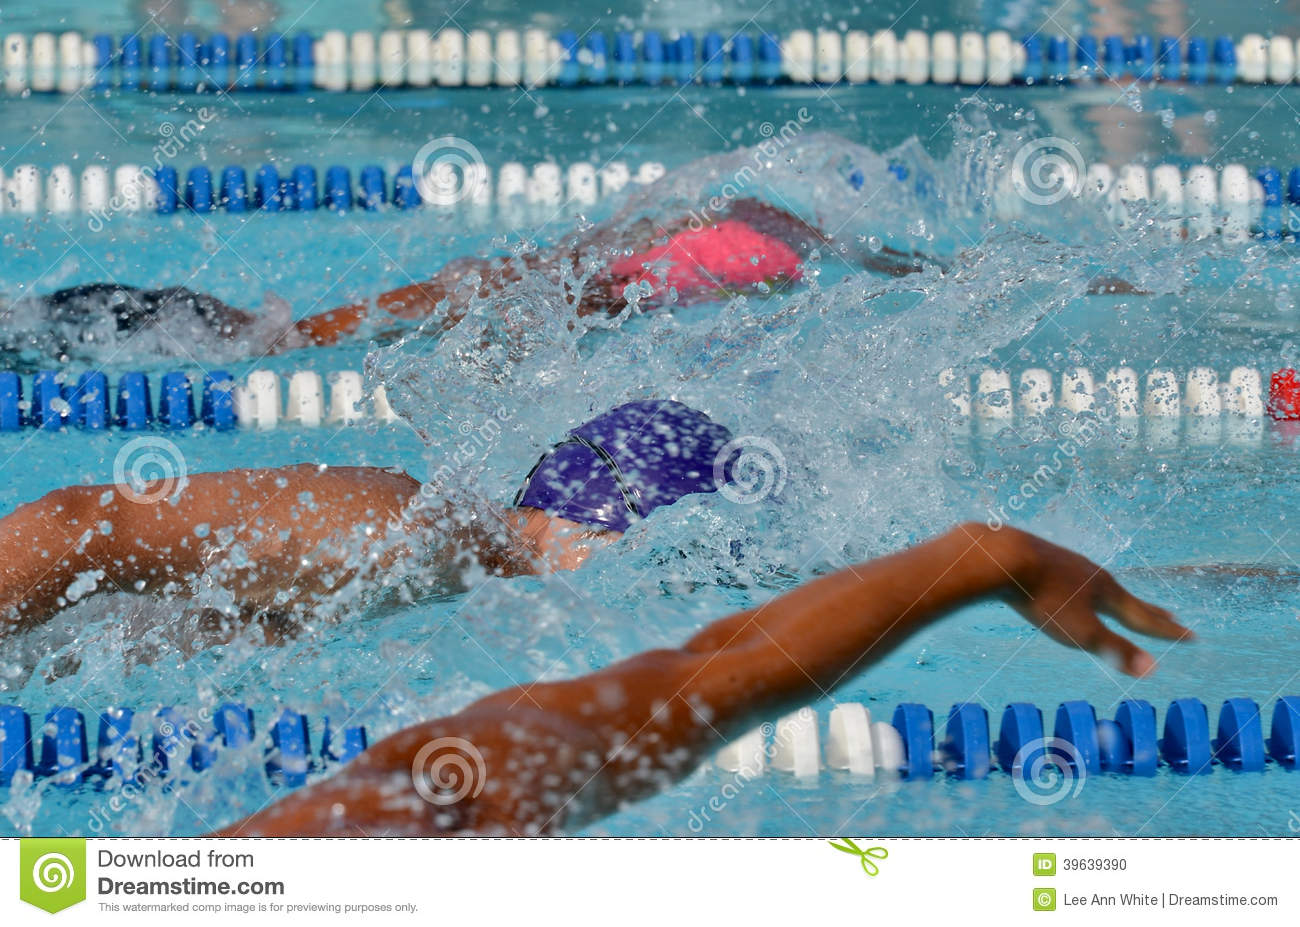 Freestyle swimmers in a close race at a swim meet